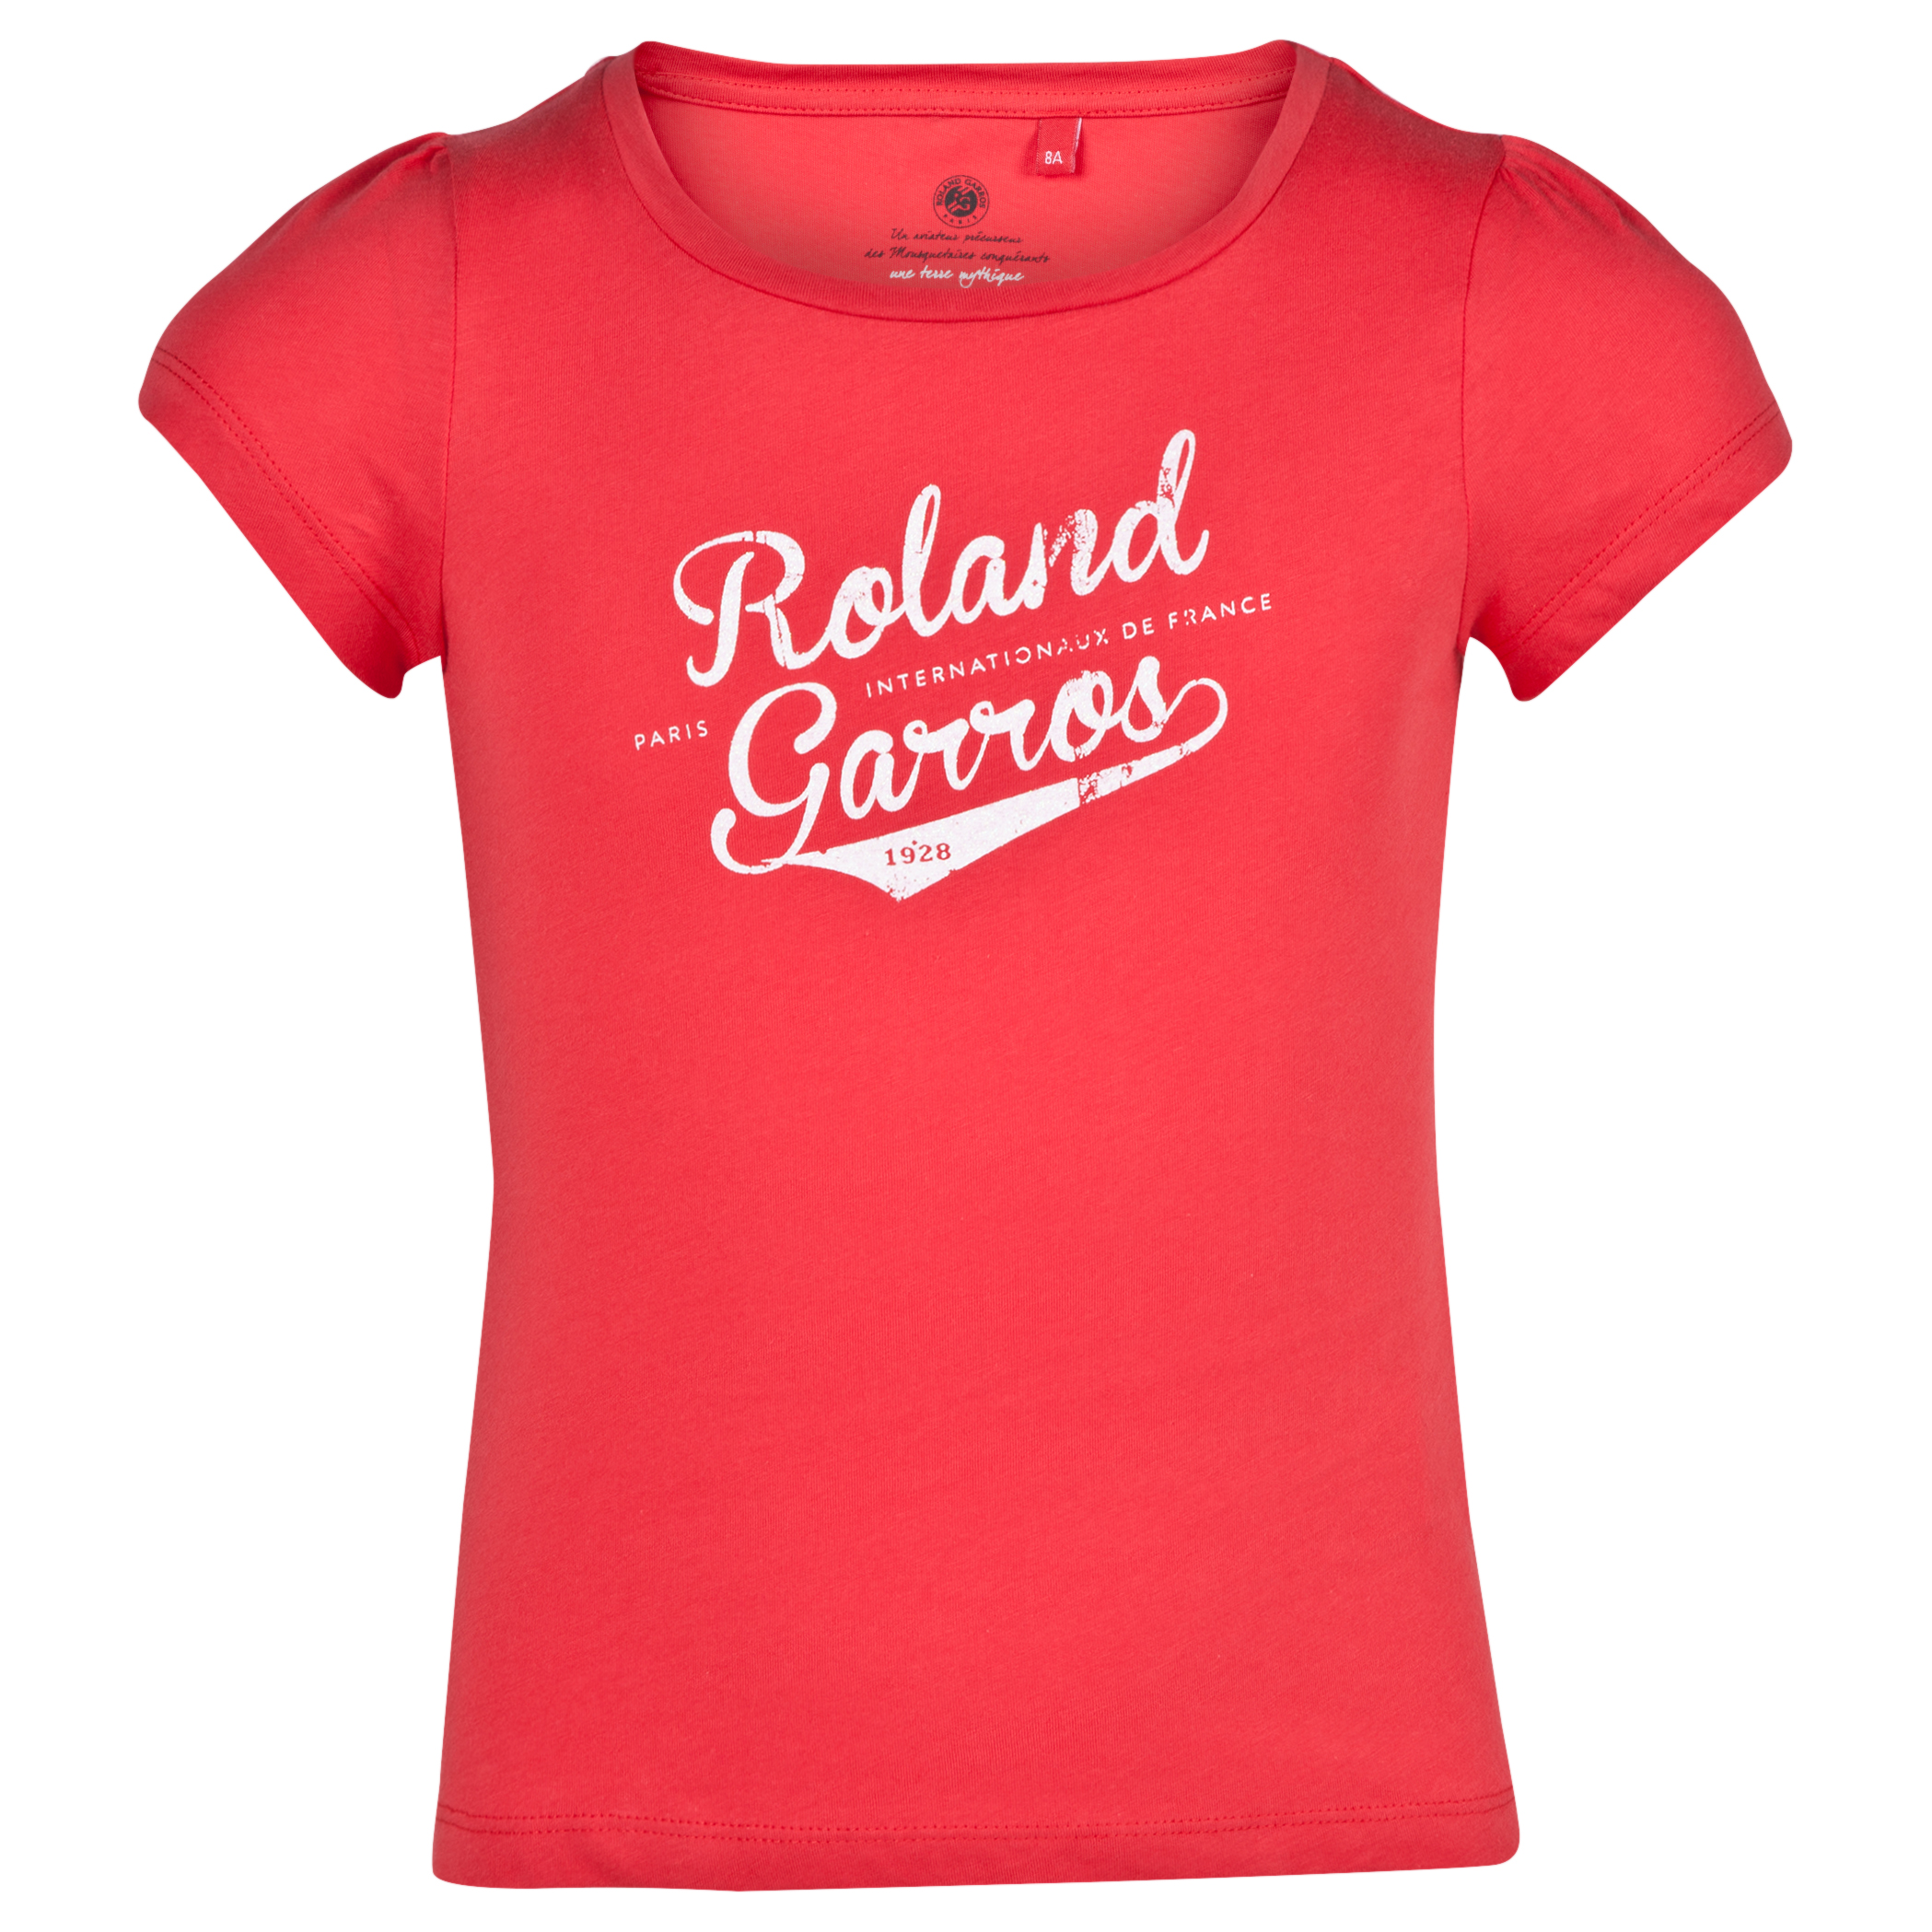 Roland-Garros Barretos College T-Shirt - Girls Red